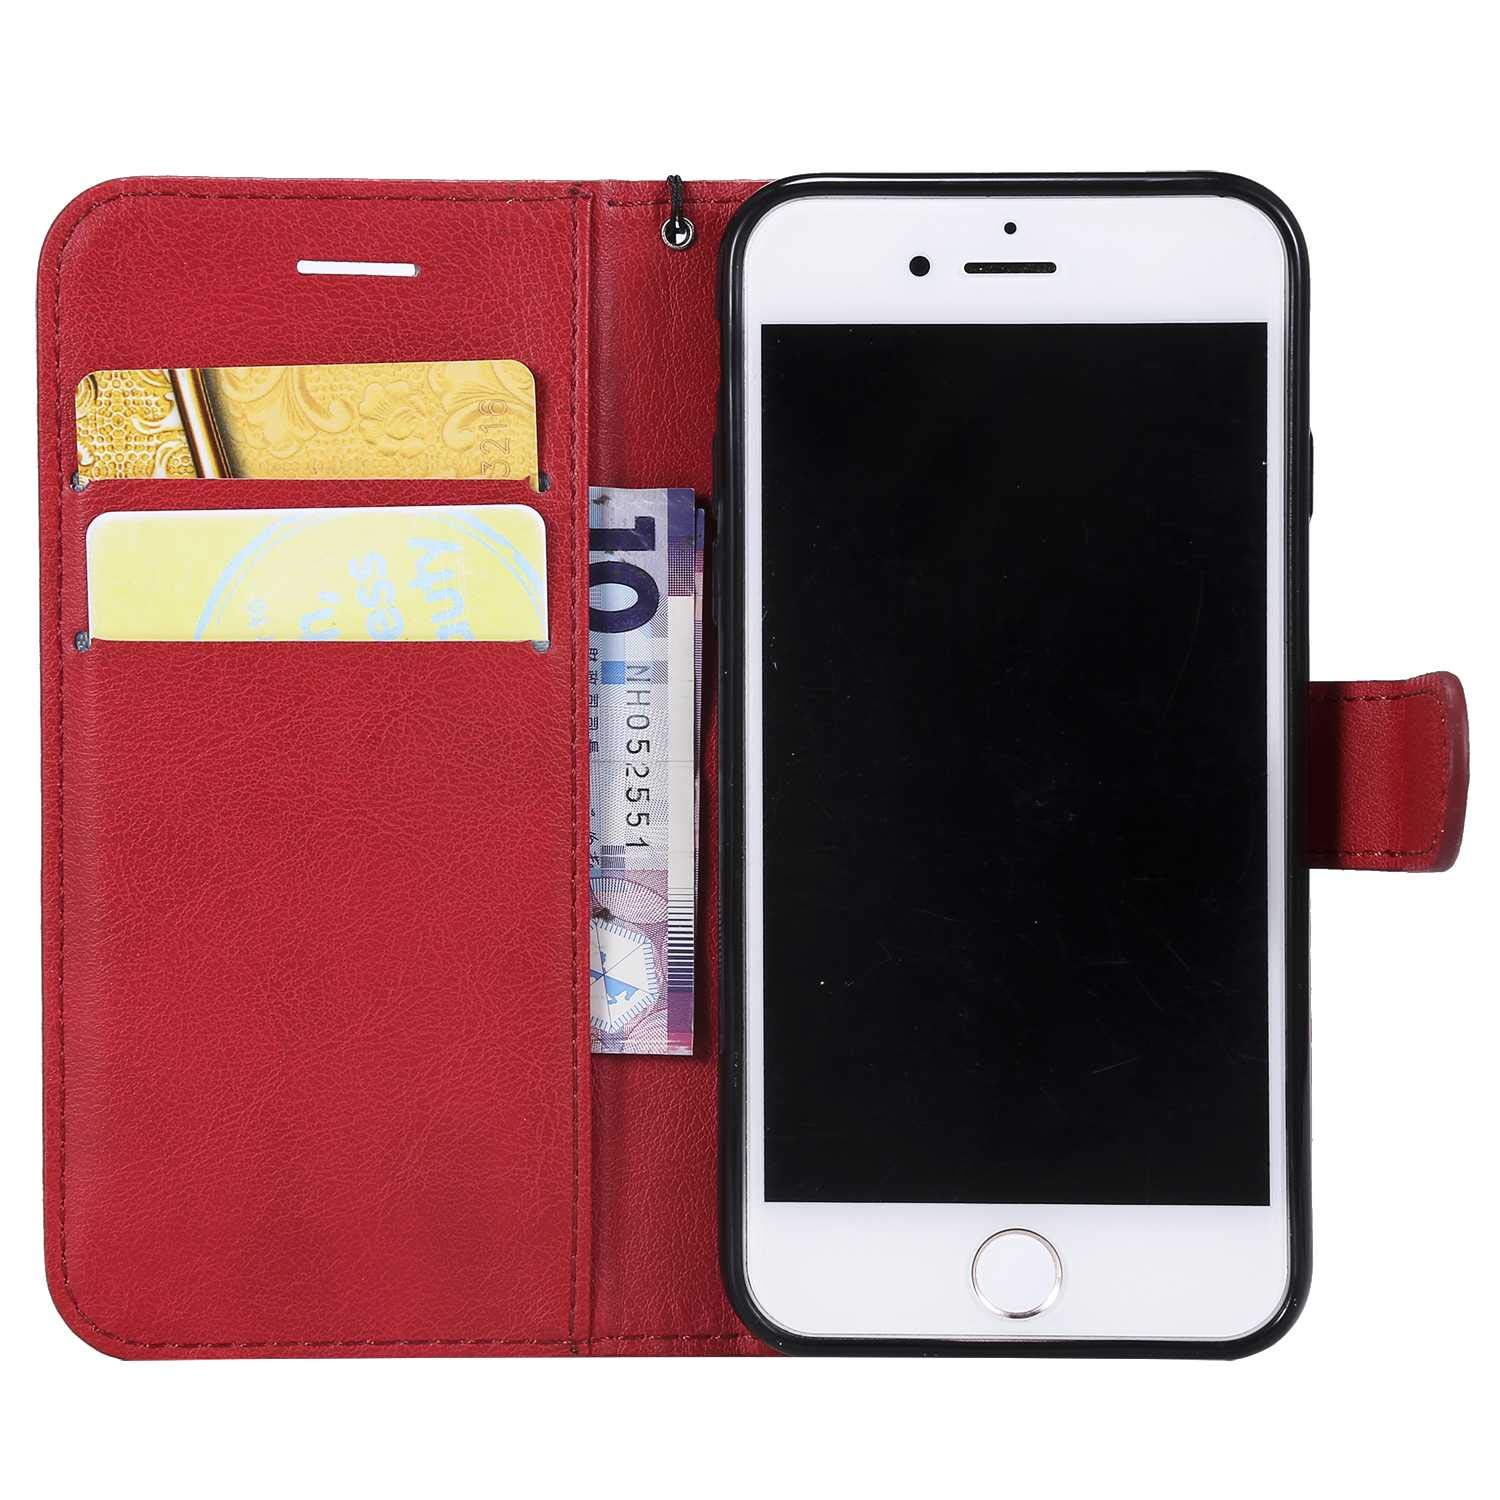 iPhone 7/8 Case, The Grafu Shockproof Leather Wallet Flip Case with [Card Slots] [Wrist Strap] Stand Function Cover for Apple iPhone 7 / iPhone 8, Red by The Grafu (Image #5)